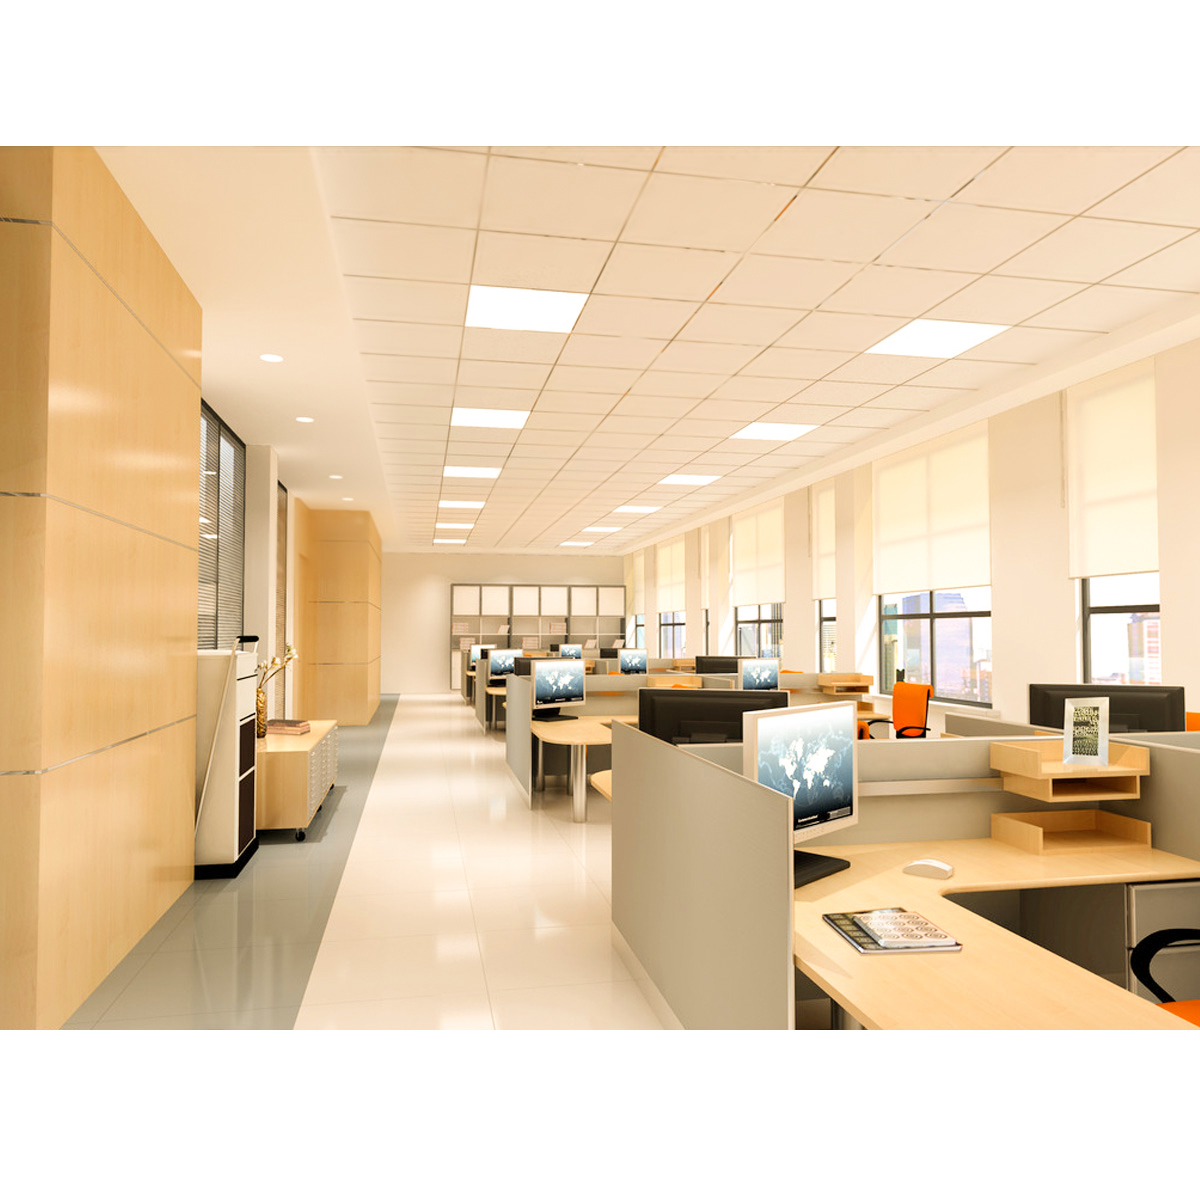 36w Dimmable Led Ceiling Down Light Bathroom Fitting: 2x 36W LED Recessed Light Panel Ceiling Down Light Ultra